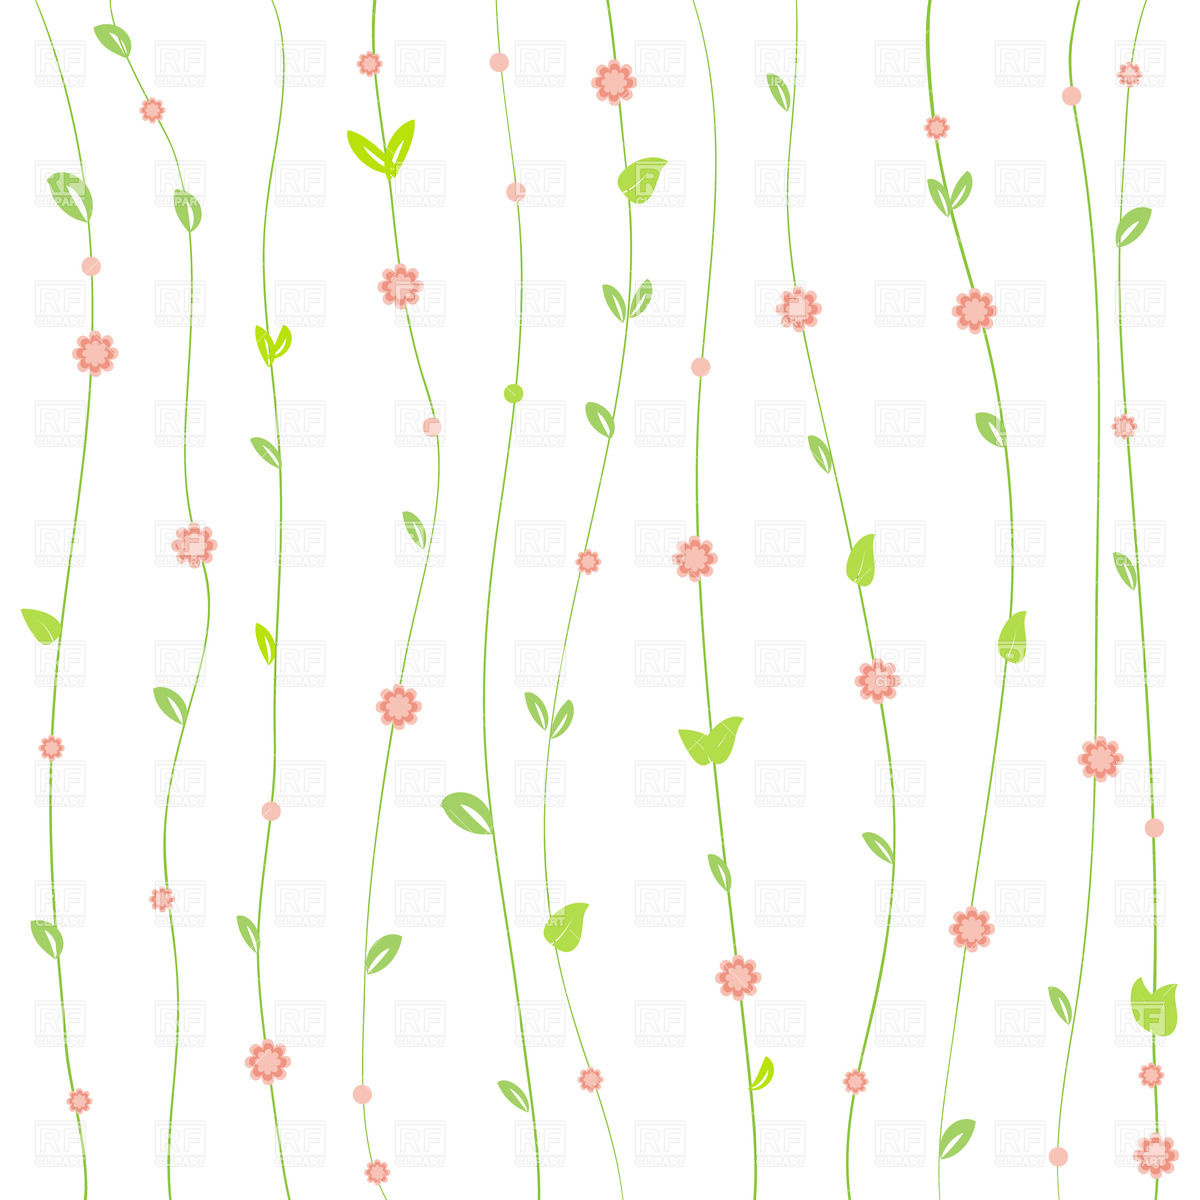 Background cliparts free download image transparent Clipart background free download - ClipartFox image transparent